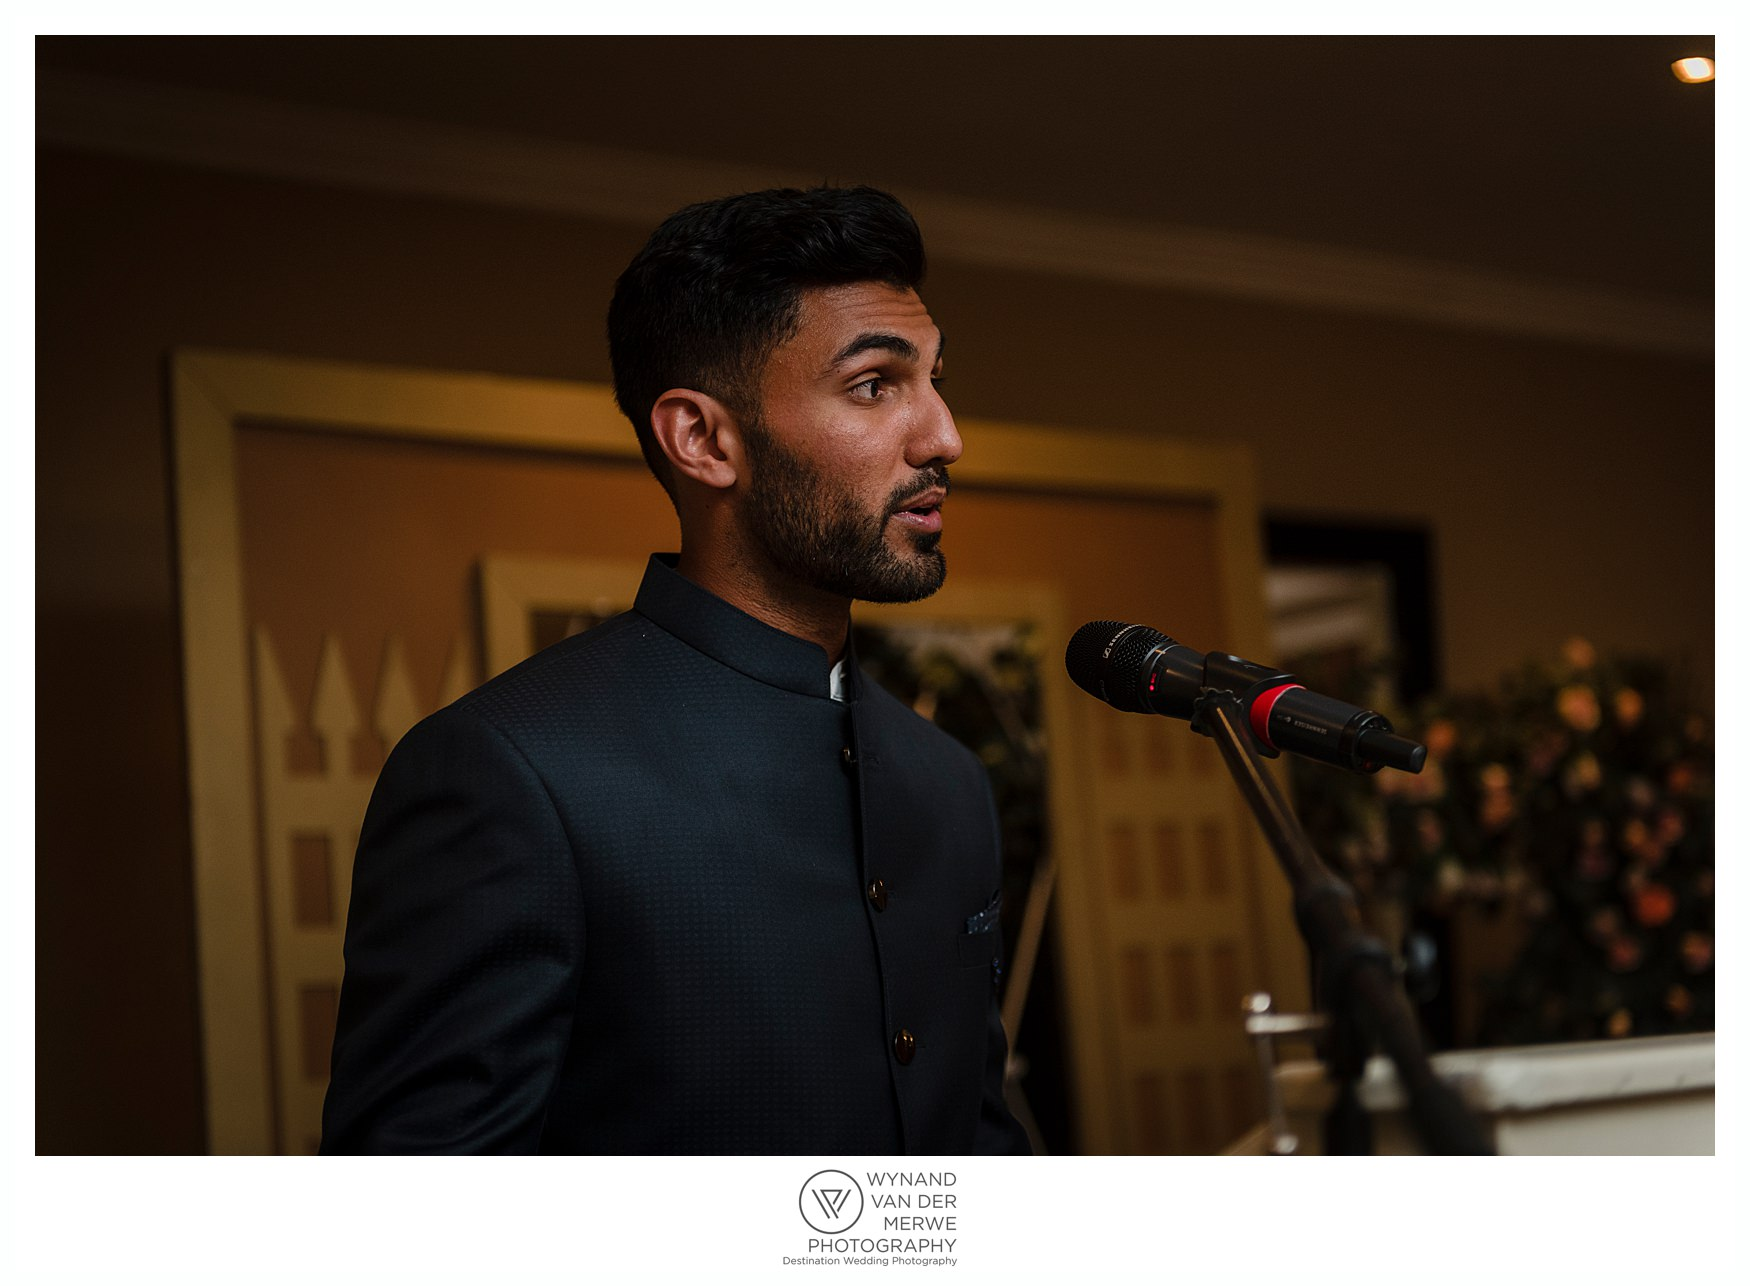 Nabeel and Jenalea's wedding at Summerplace, Hydepark